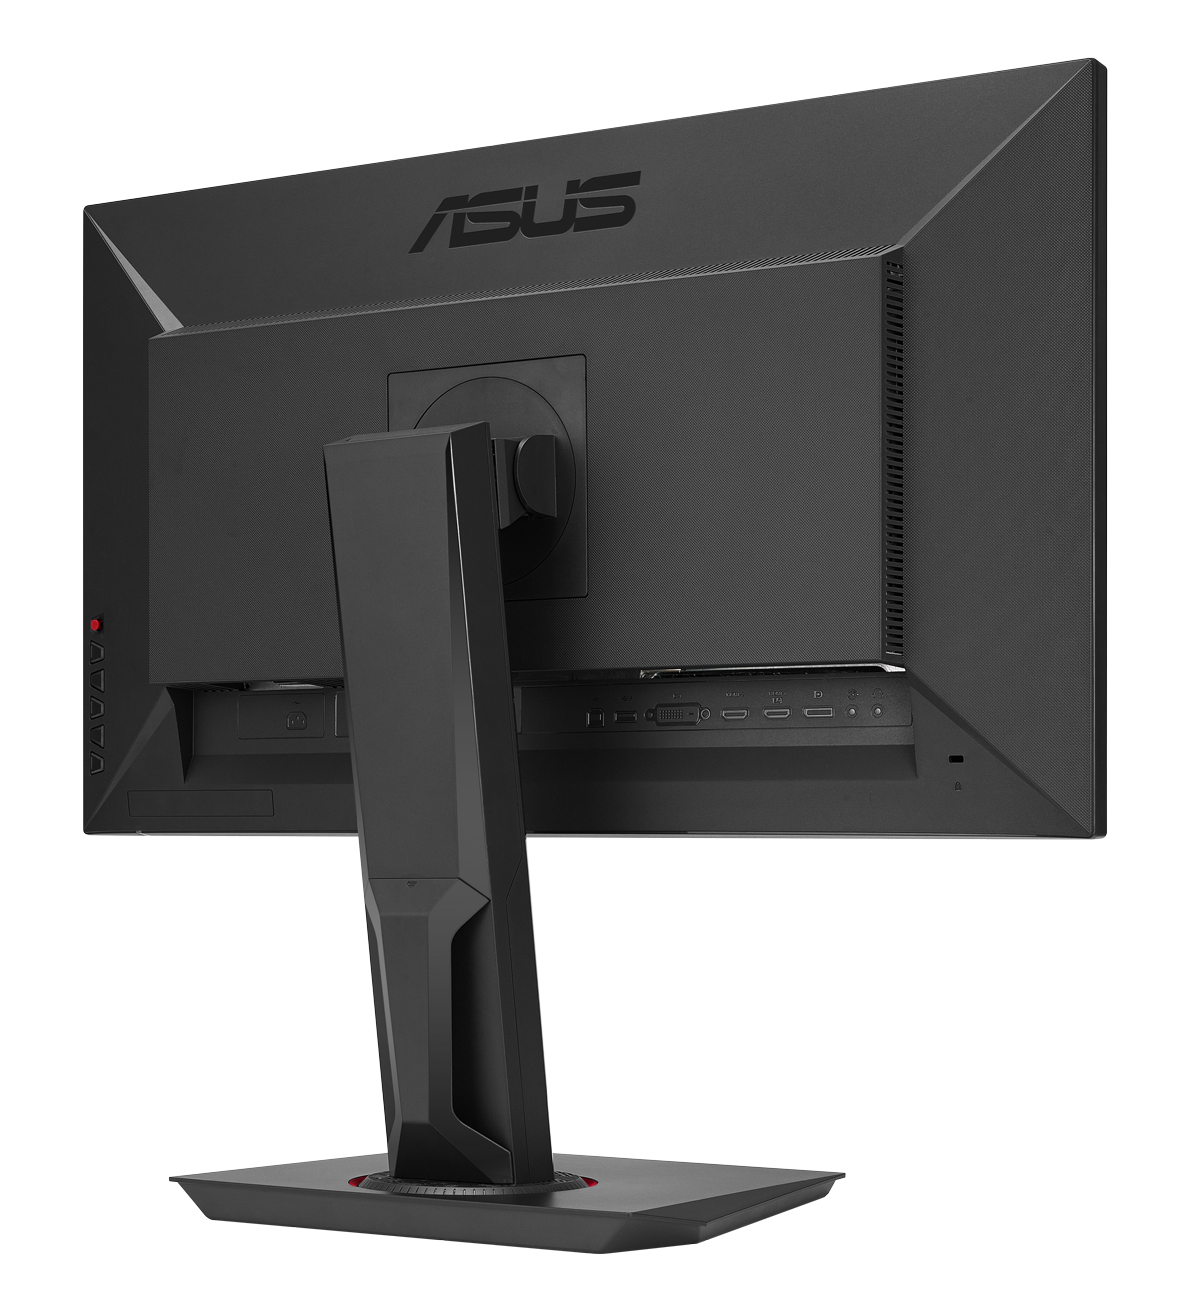 ASUS Announces MG278Q 27-Inch 144Hz FreeSync Gaming ...